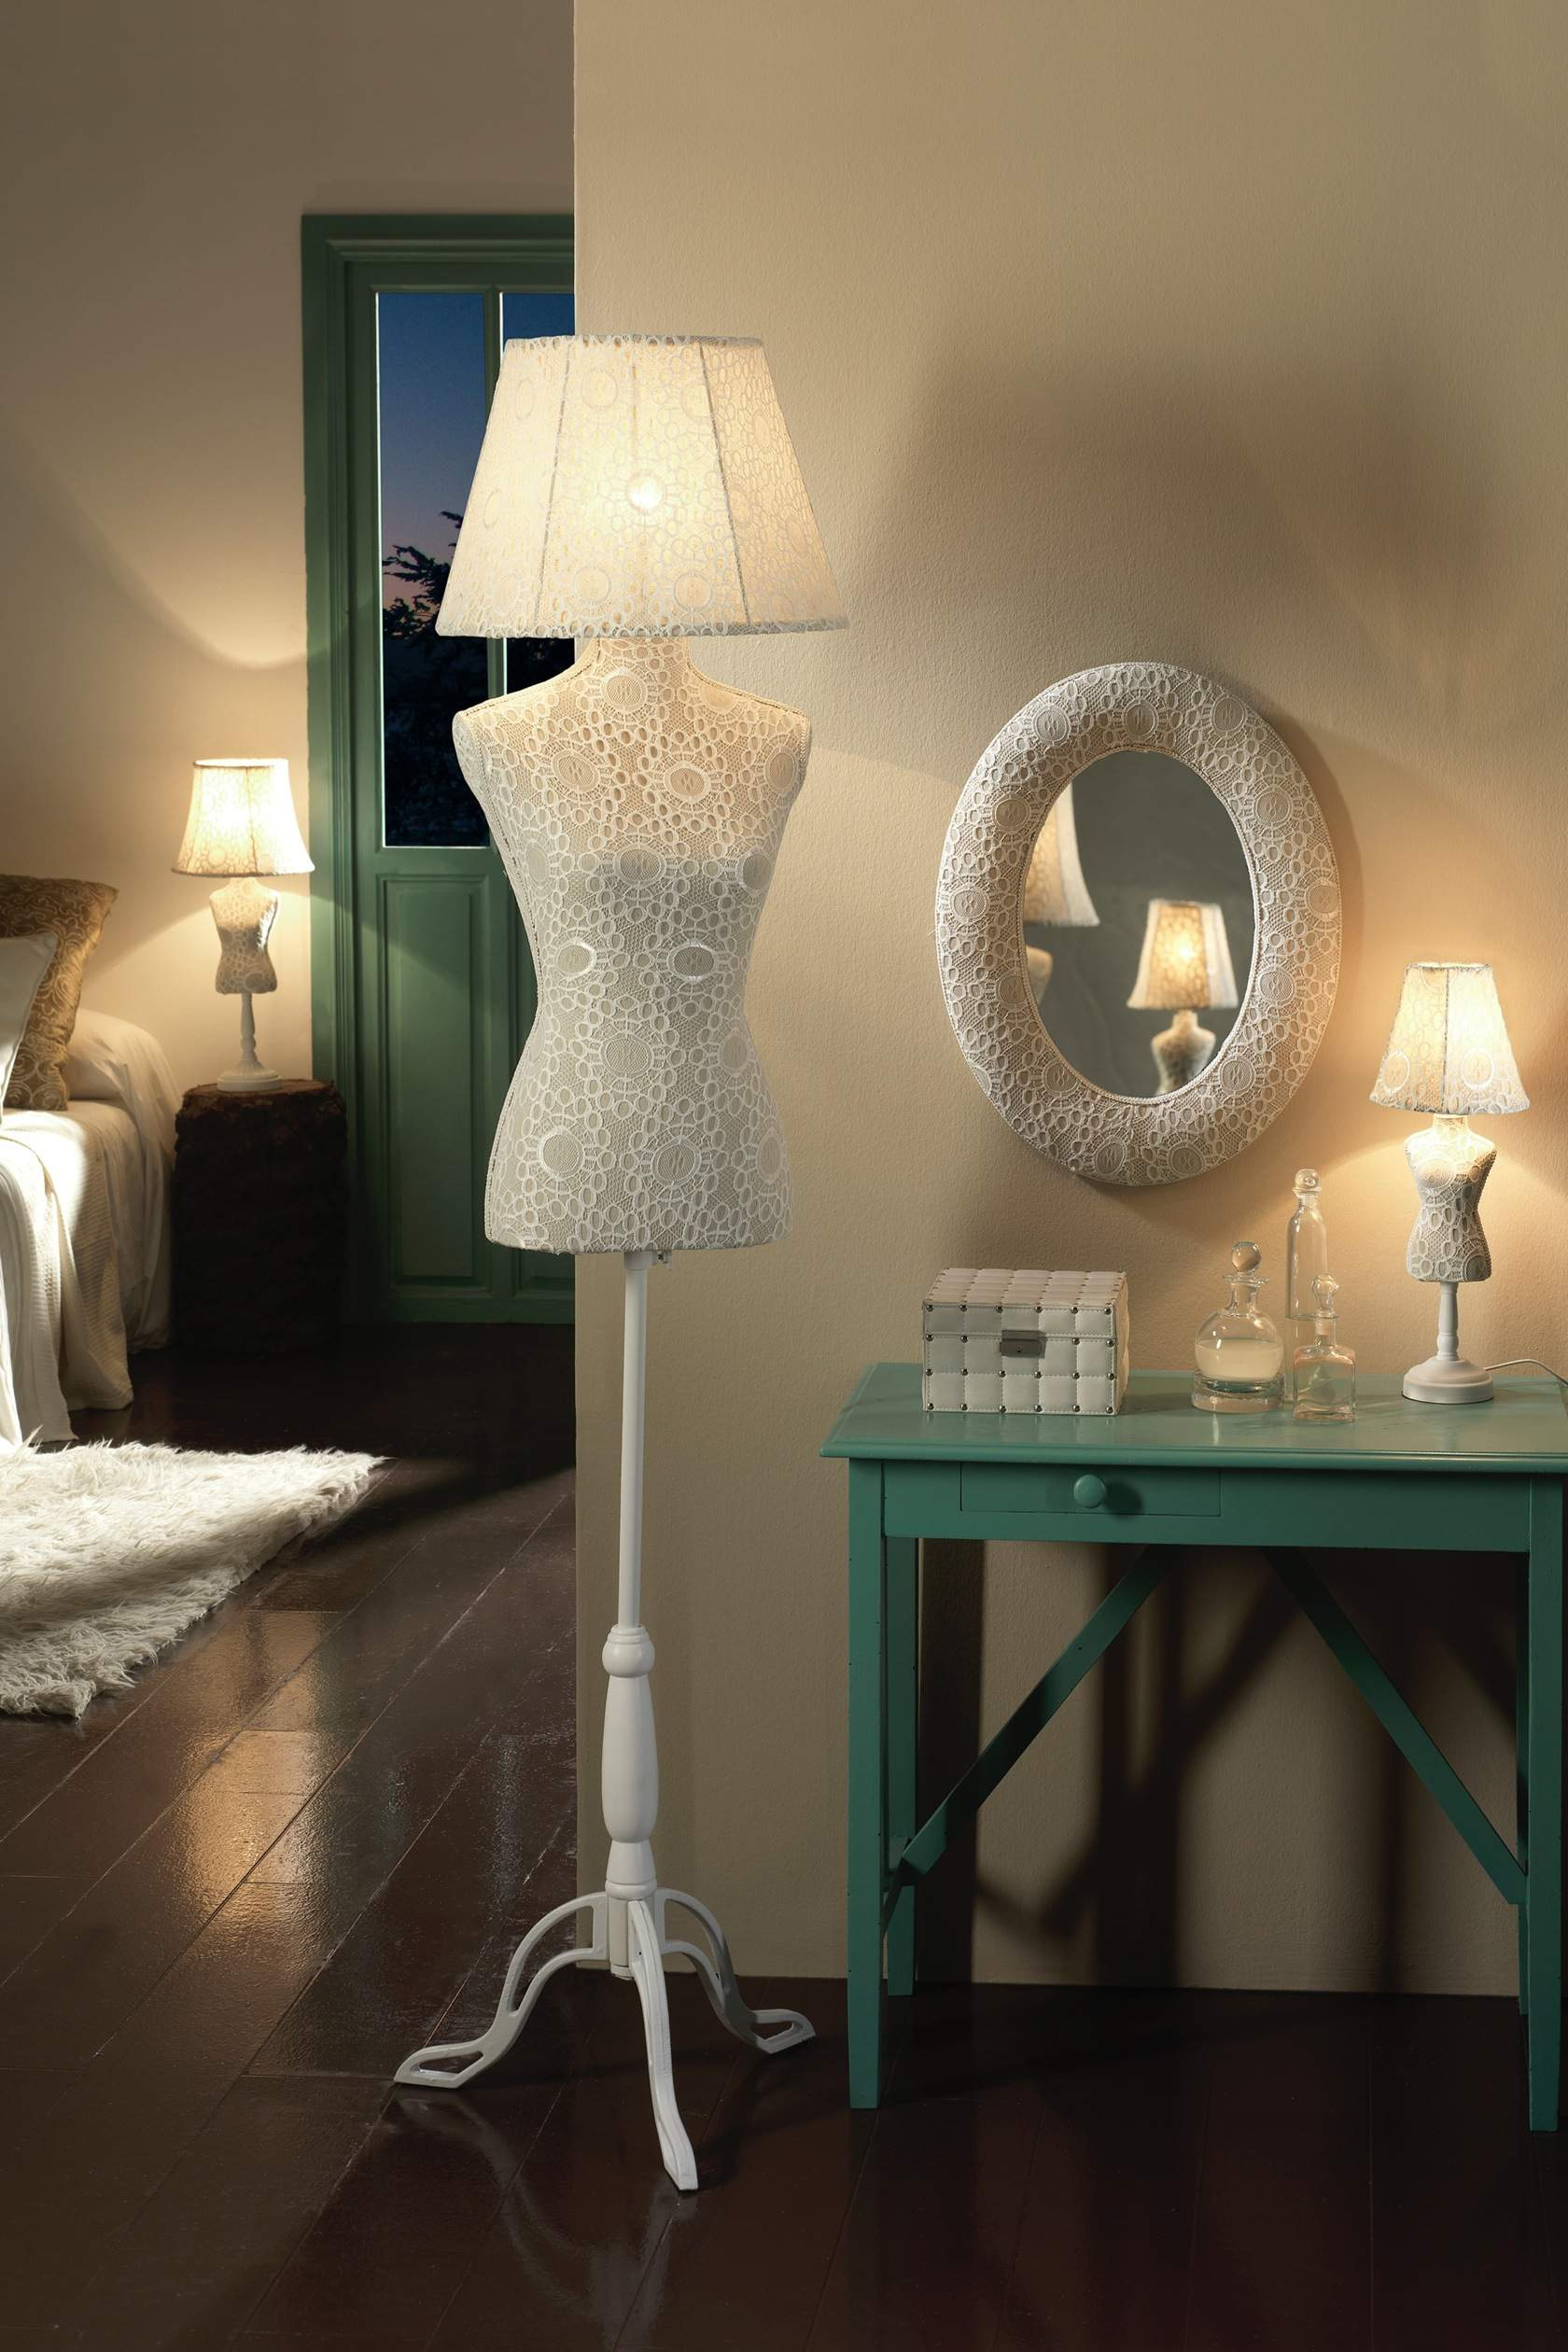 Vogue lámpara of Floor Lamp Croche